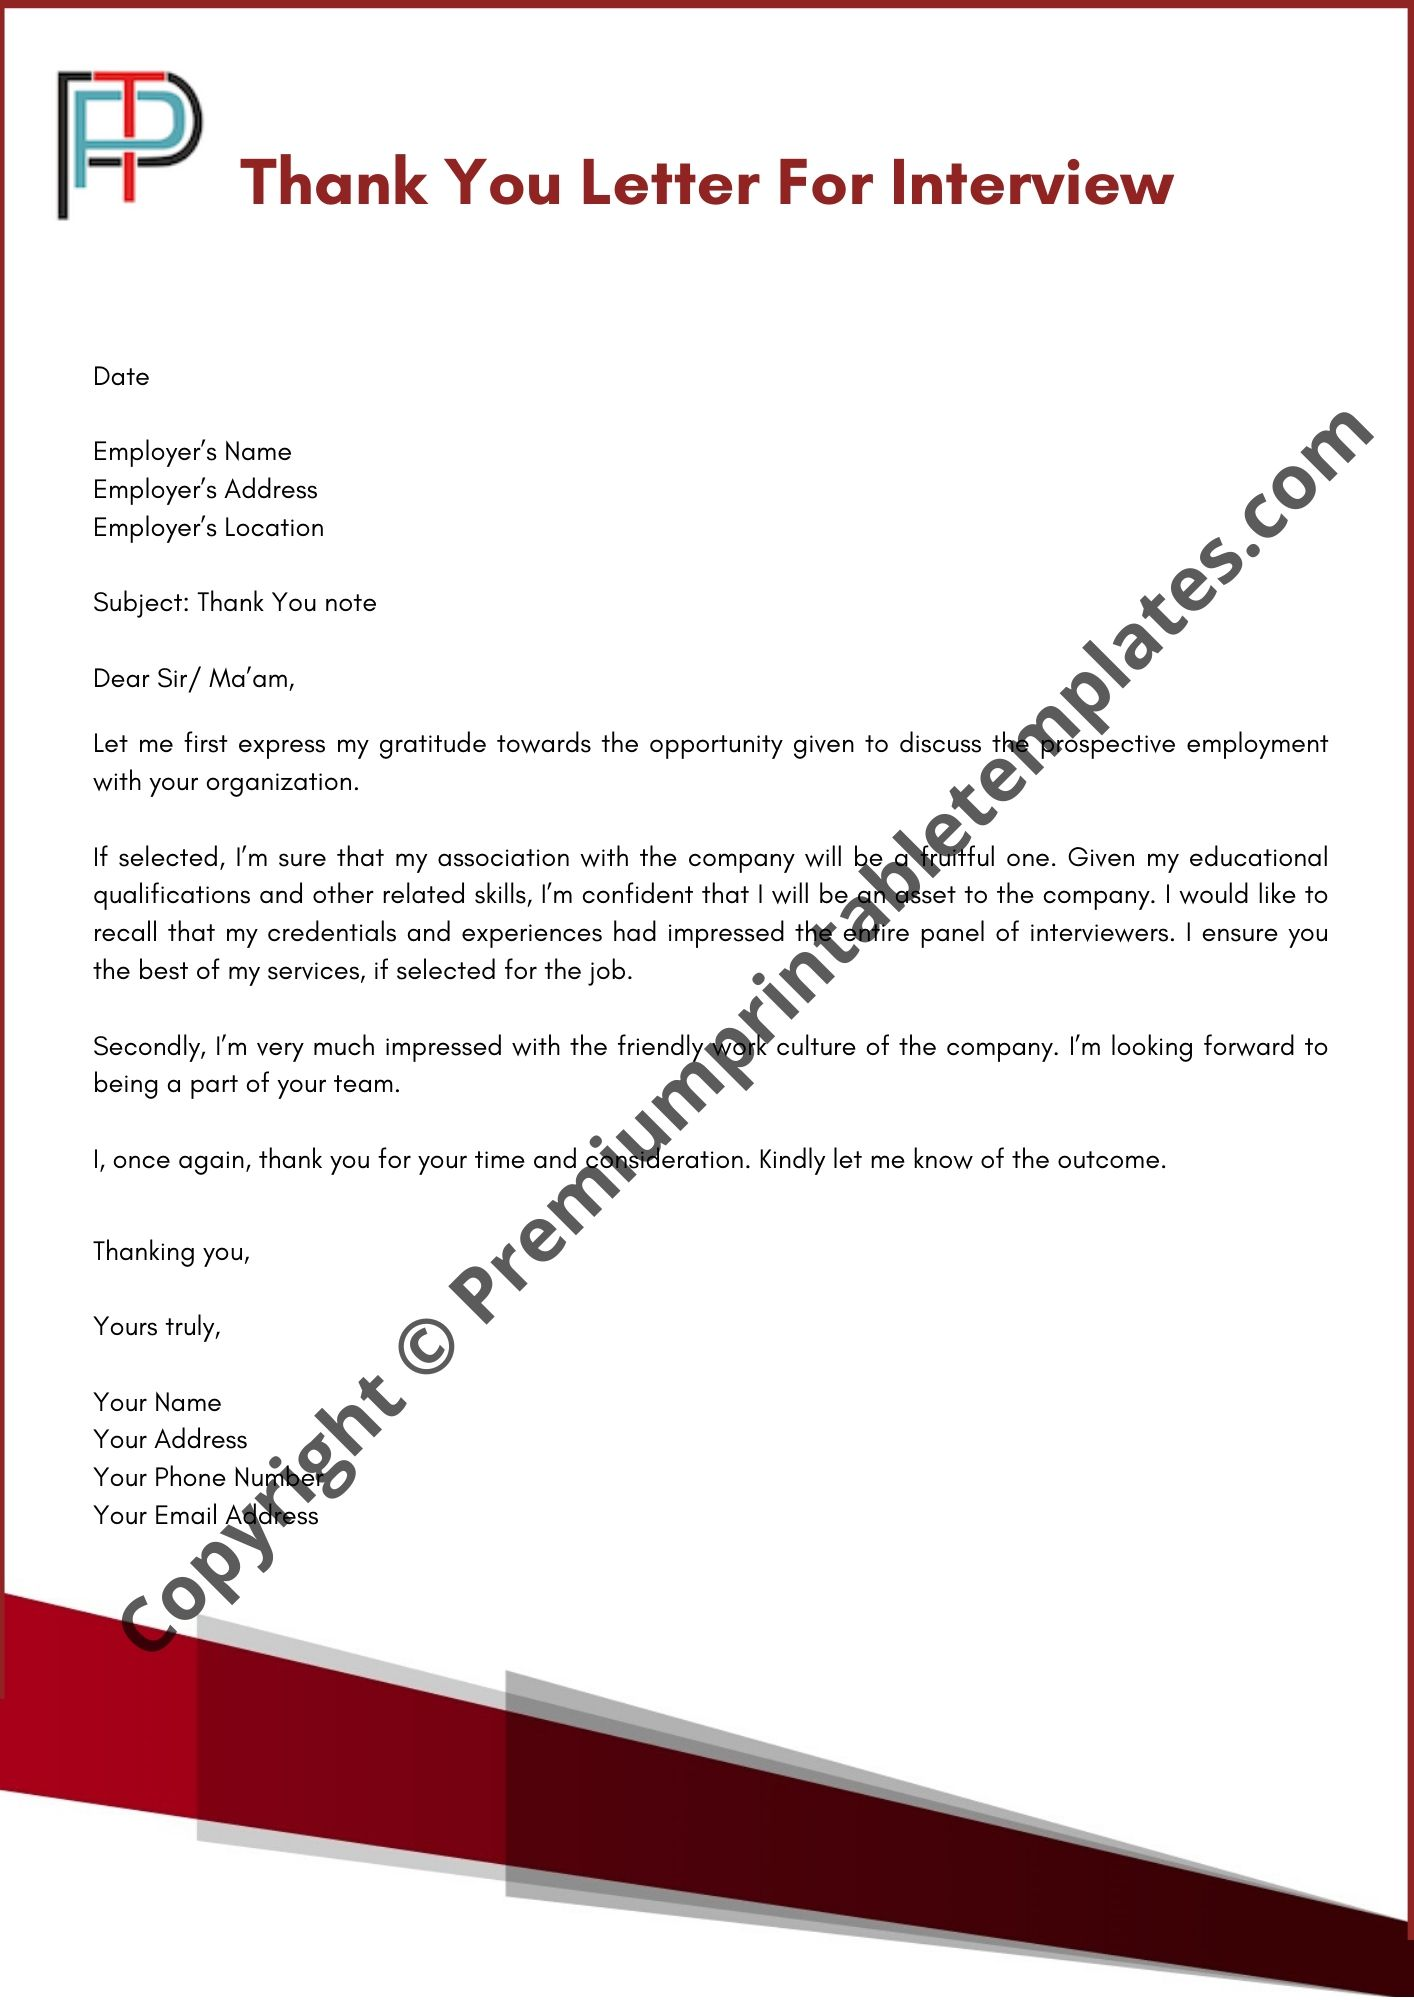 The Best Thank You Letter from premiumprintabletemplates.com